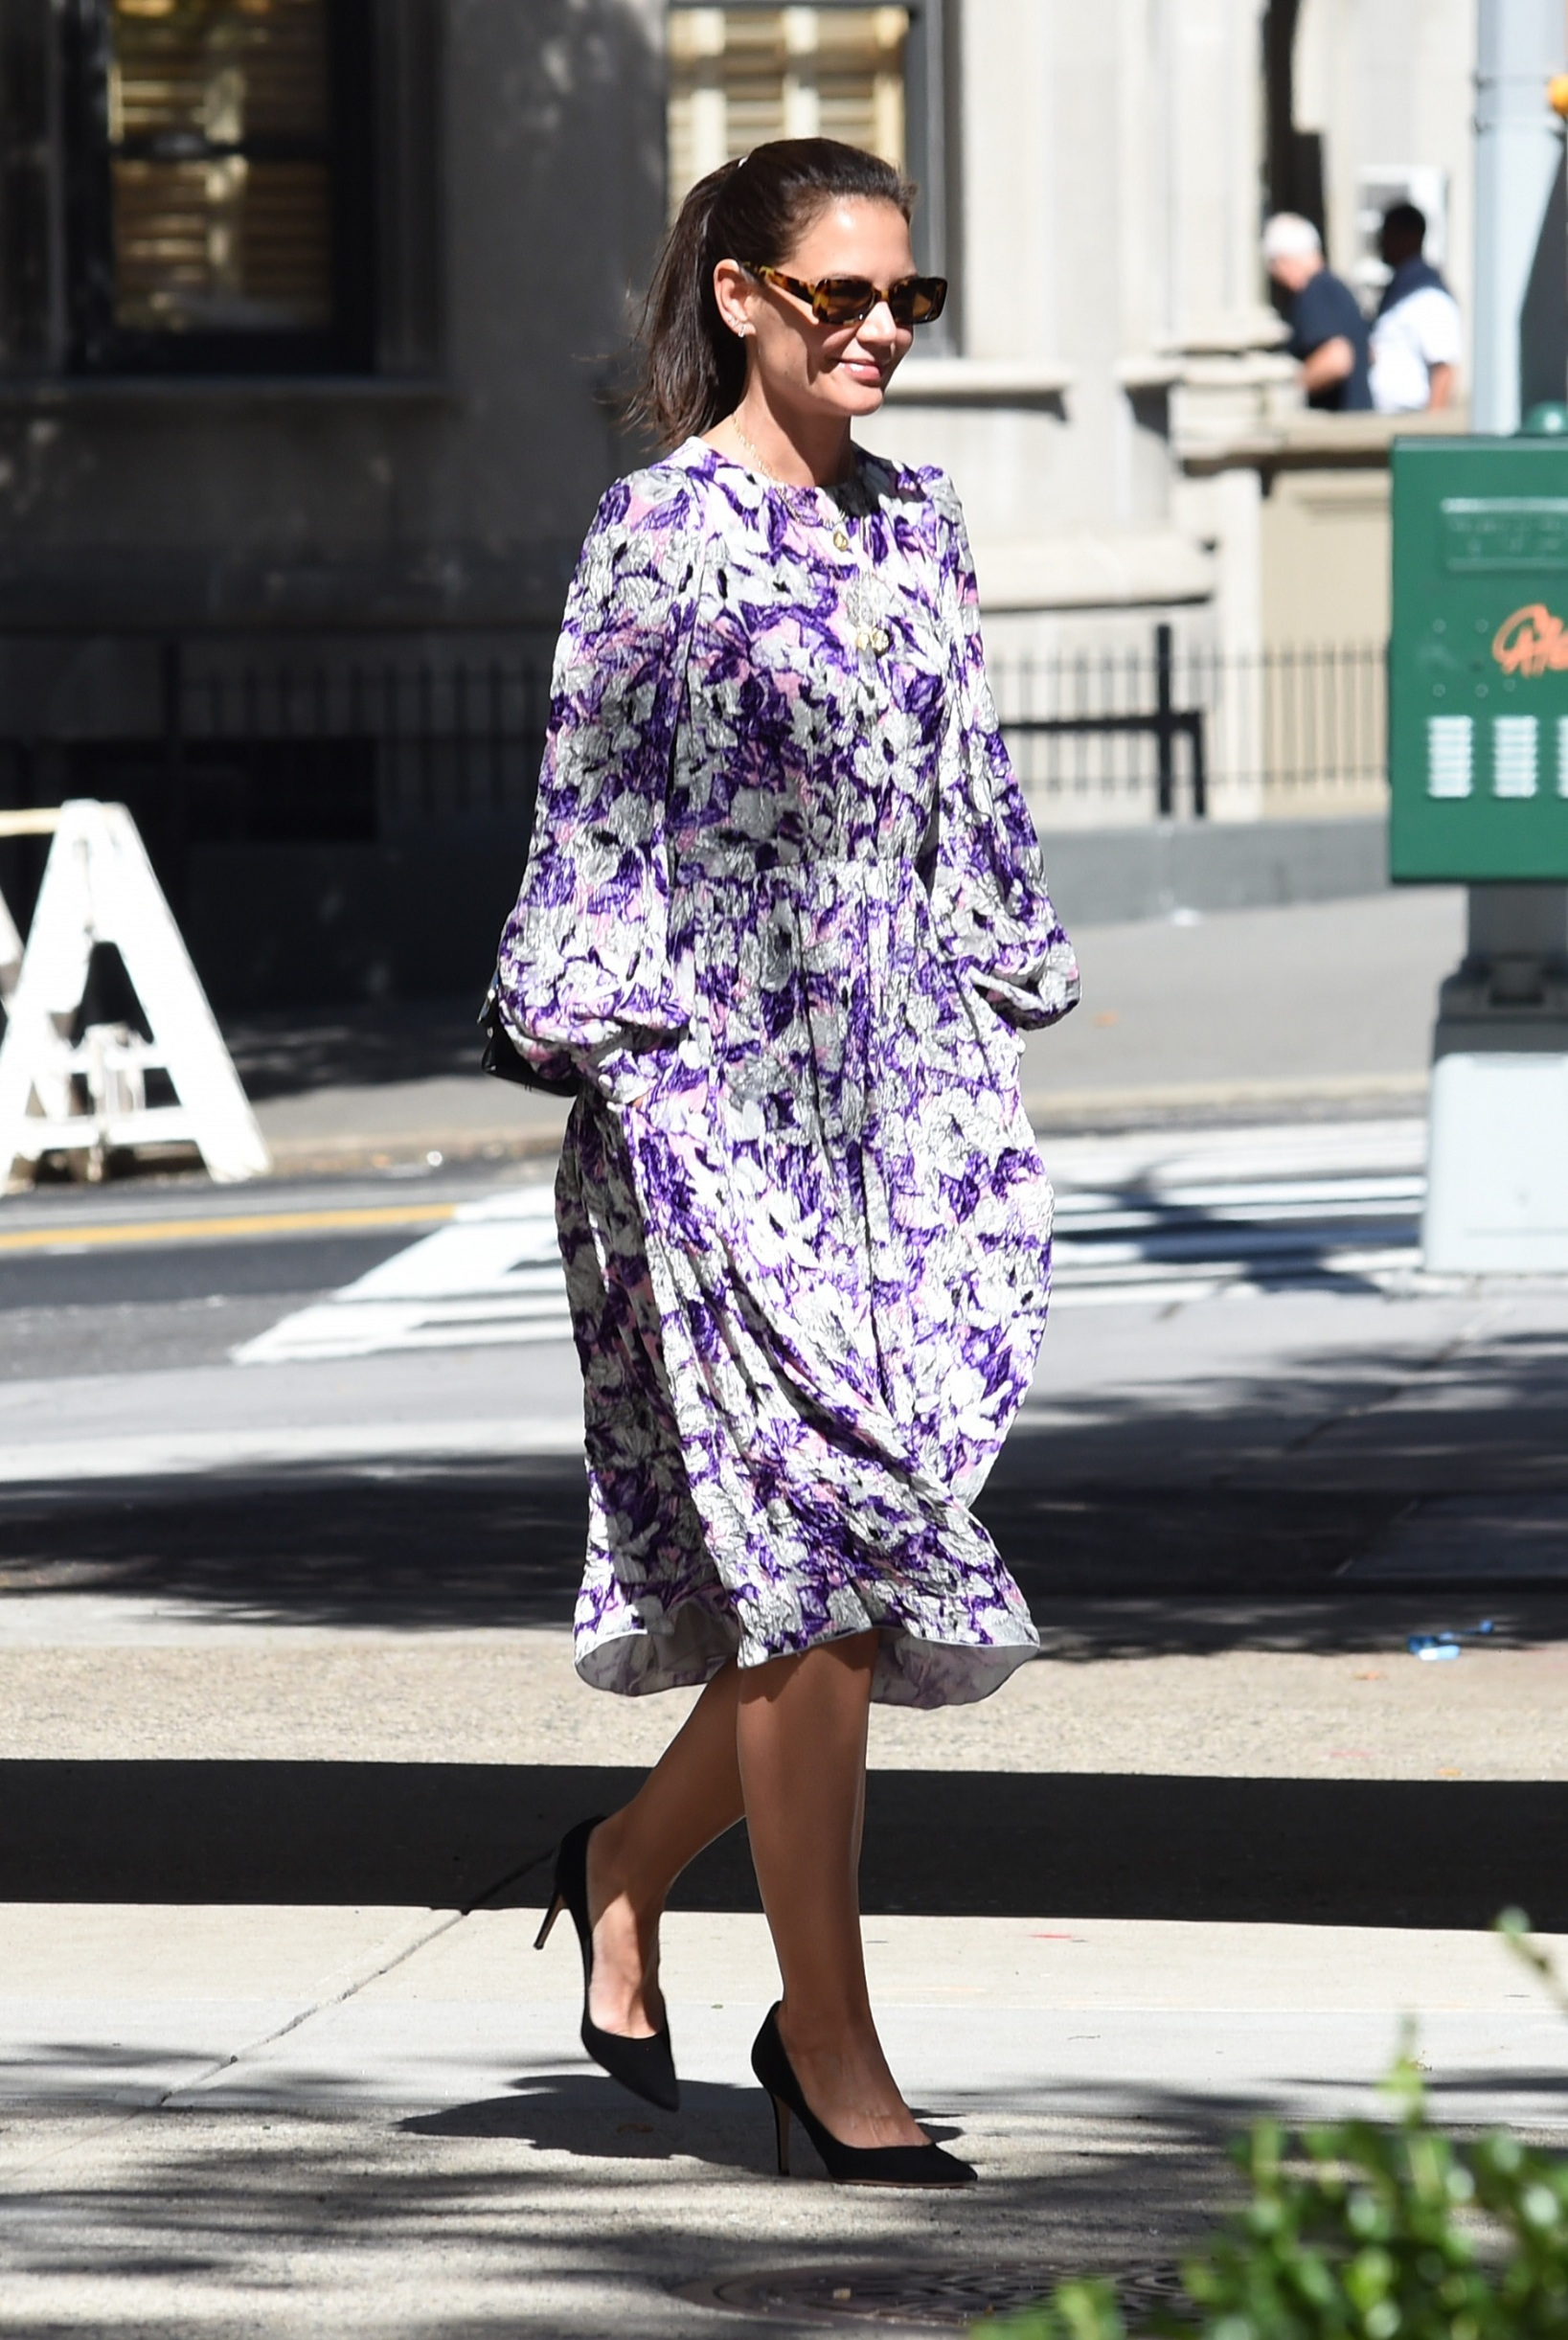 September 17, 2019, New York, NY, USA: September 17, 2019 New York City..Katie Holmes was seen in a floral print dress New York City on September 17, 2019., Image: 471449580, License: Rights-managed, Restrictions: , Model Release: no, Credit line: Kristin Callahan / Zuma Press / Profimedia